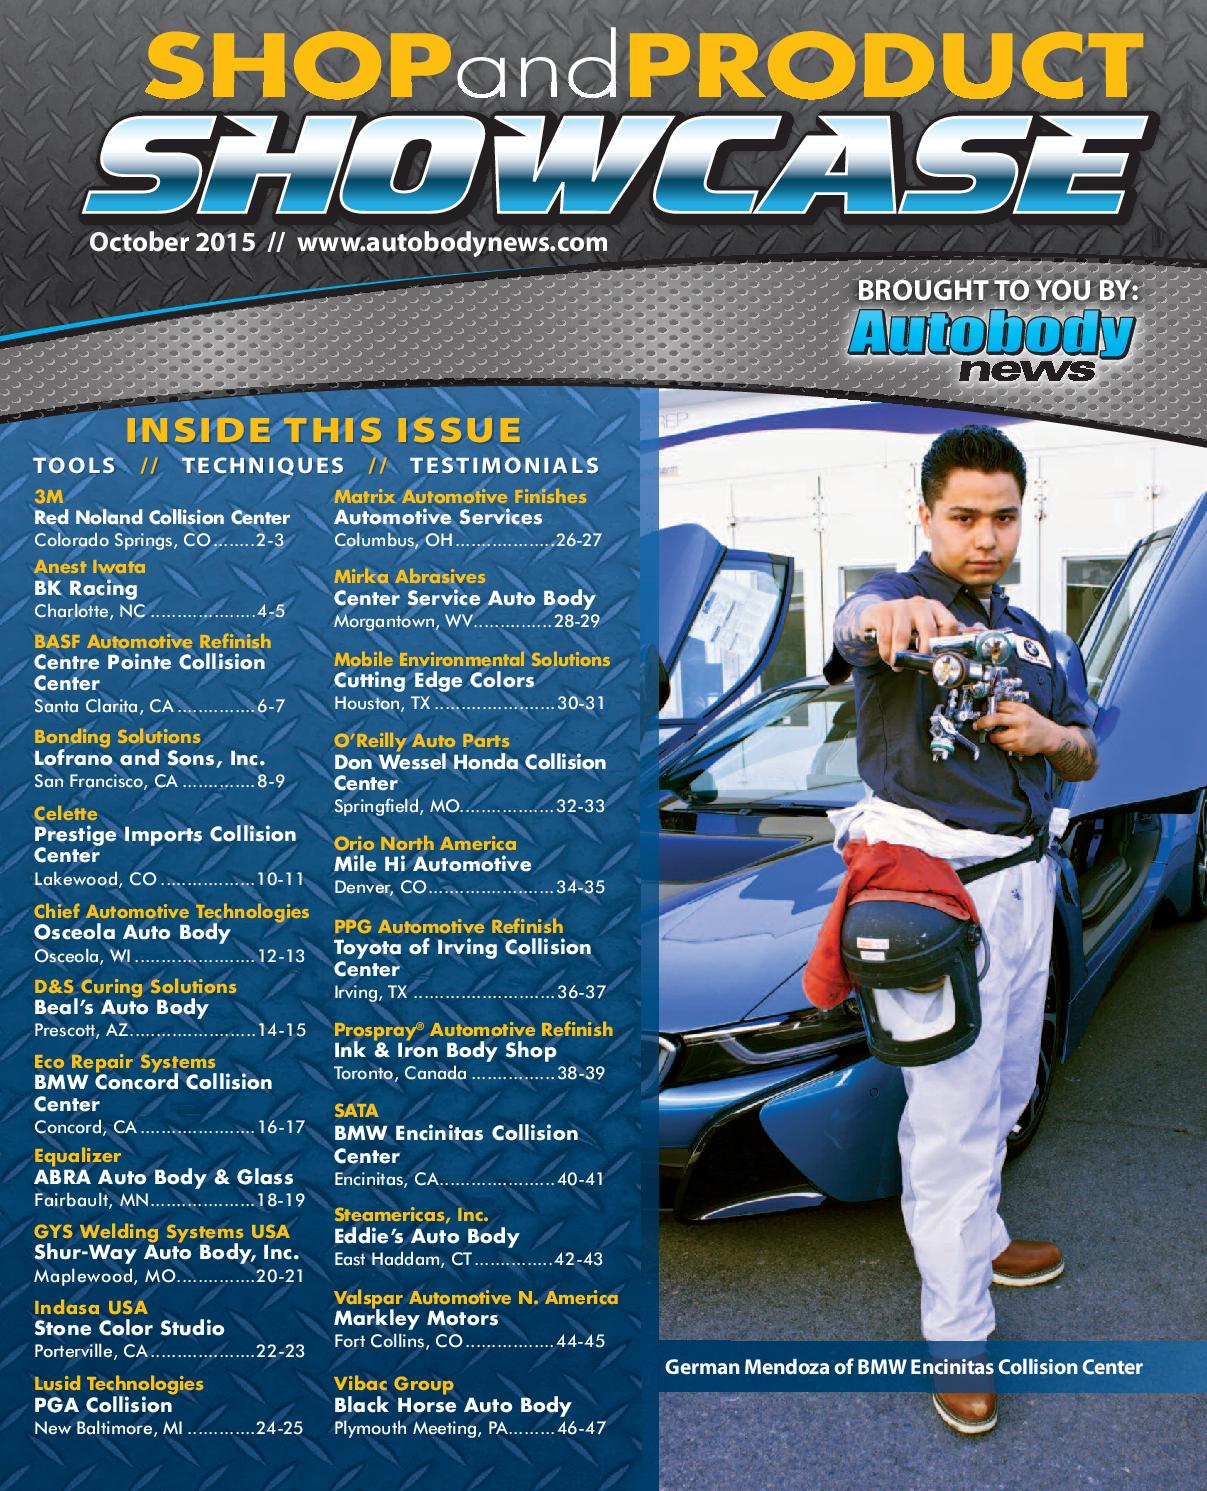 shop and product showcase october 2015 by autobody news